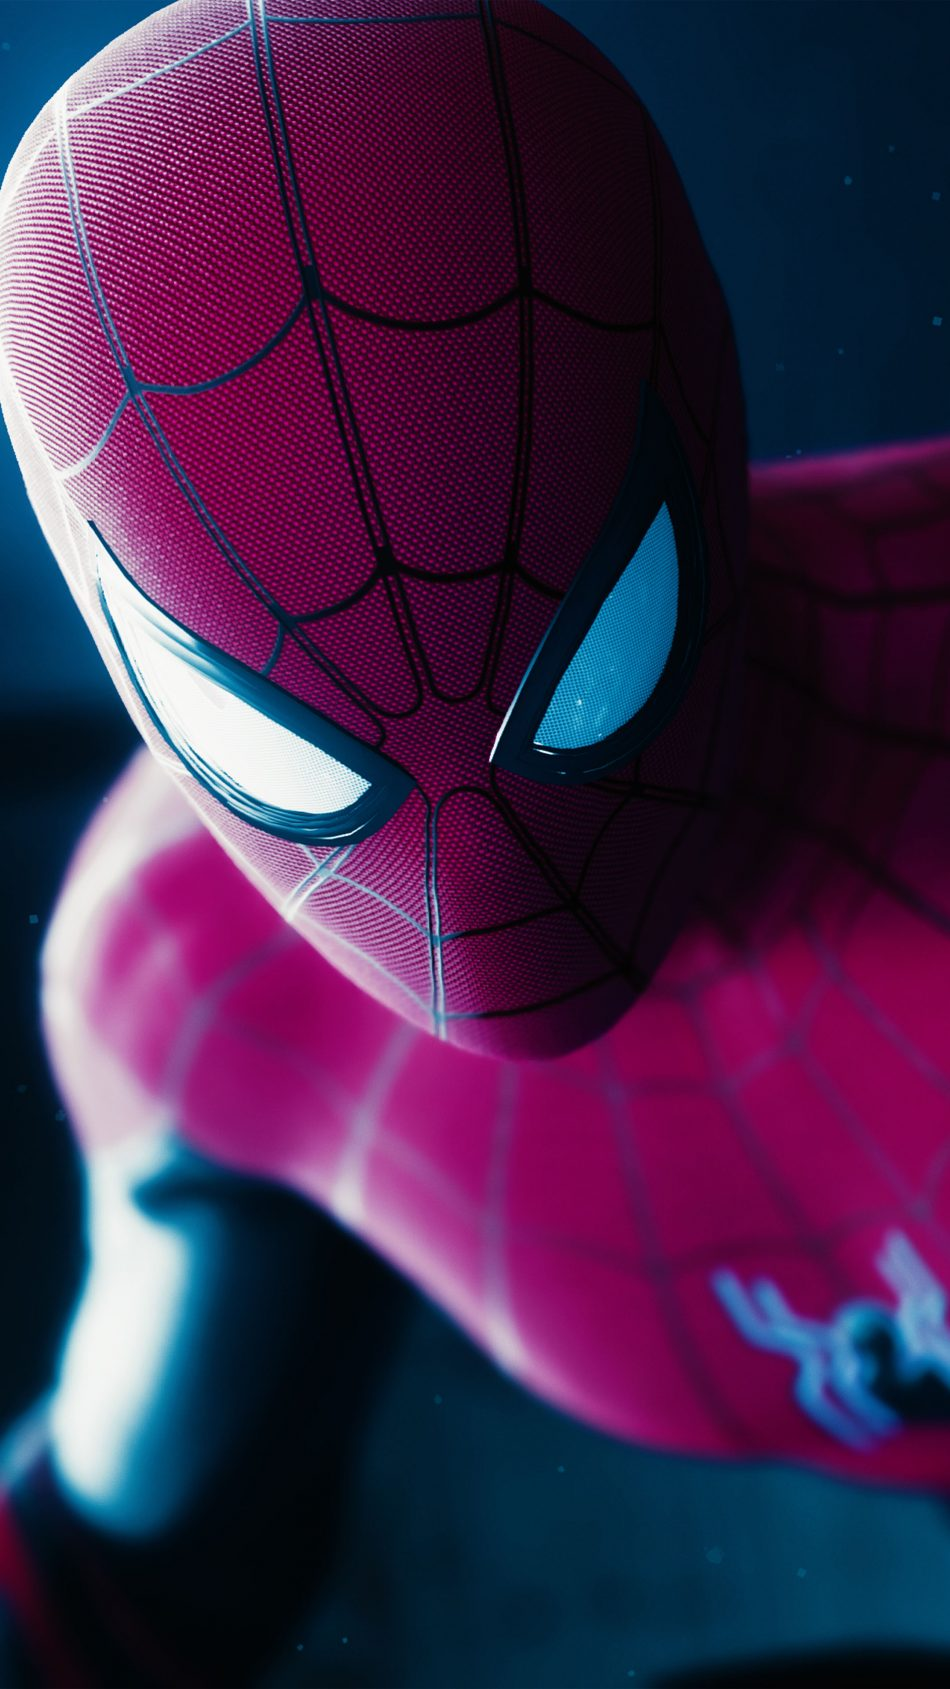 Spiderman Phone Wallpaper Hd Posted By Sarah Walker